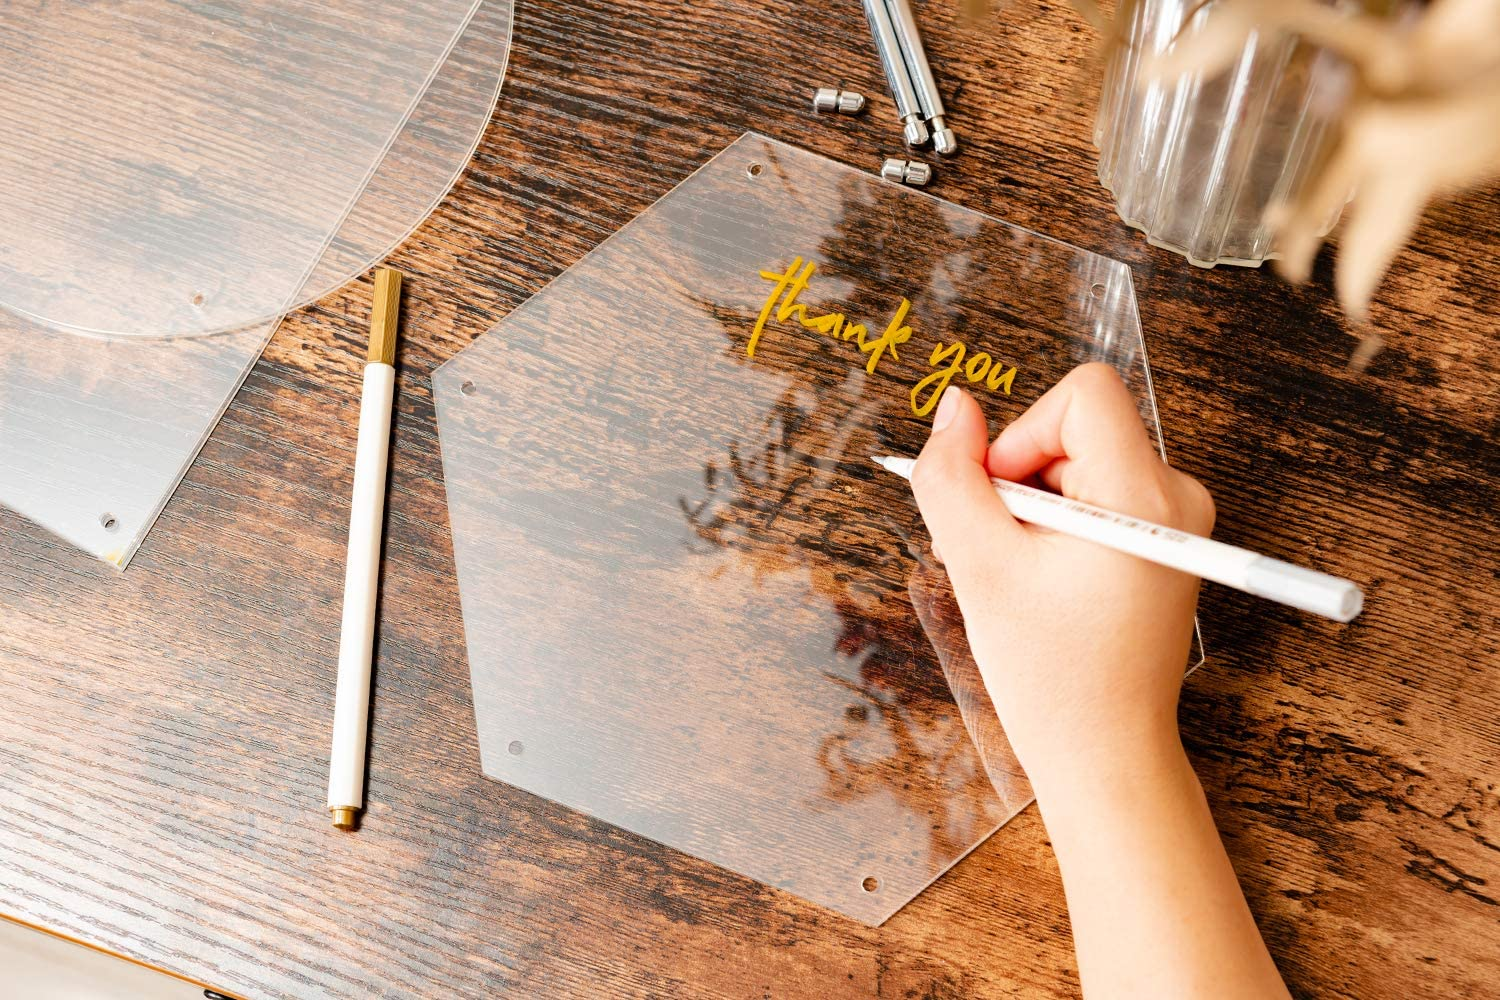 """DIY Display Projects Calculs Acrylic Sheet Clear Cast Plexiglass 8/"""" x 6.5 Panel Suqare 1//8 Thick 3mm Craft Transparent Plastic Plexi Glass Board with Protective Paper for Signs"""